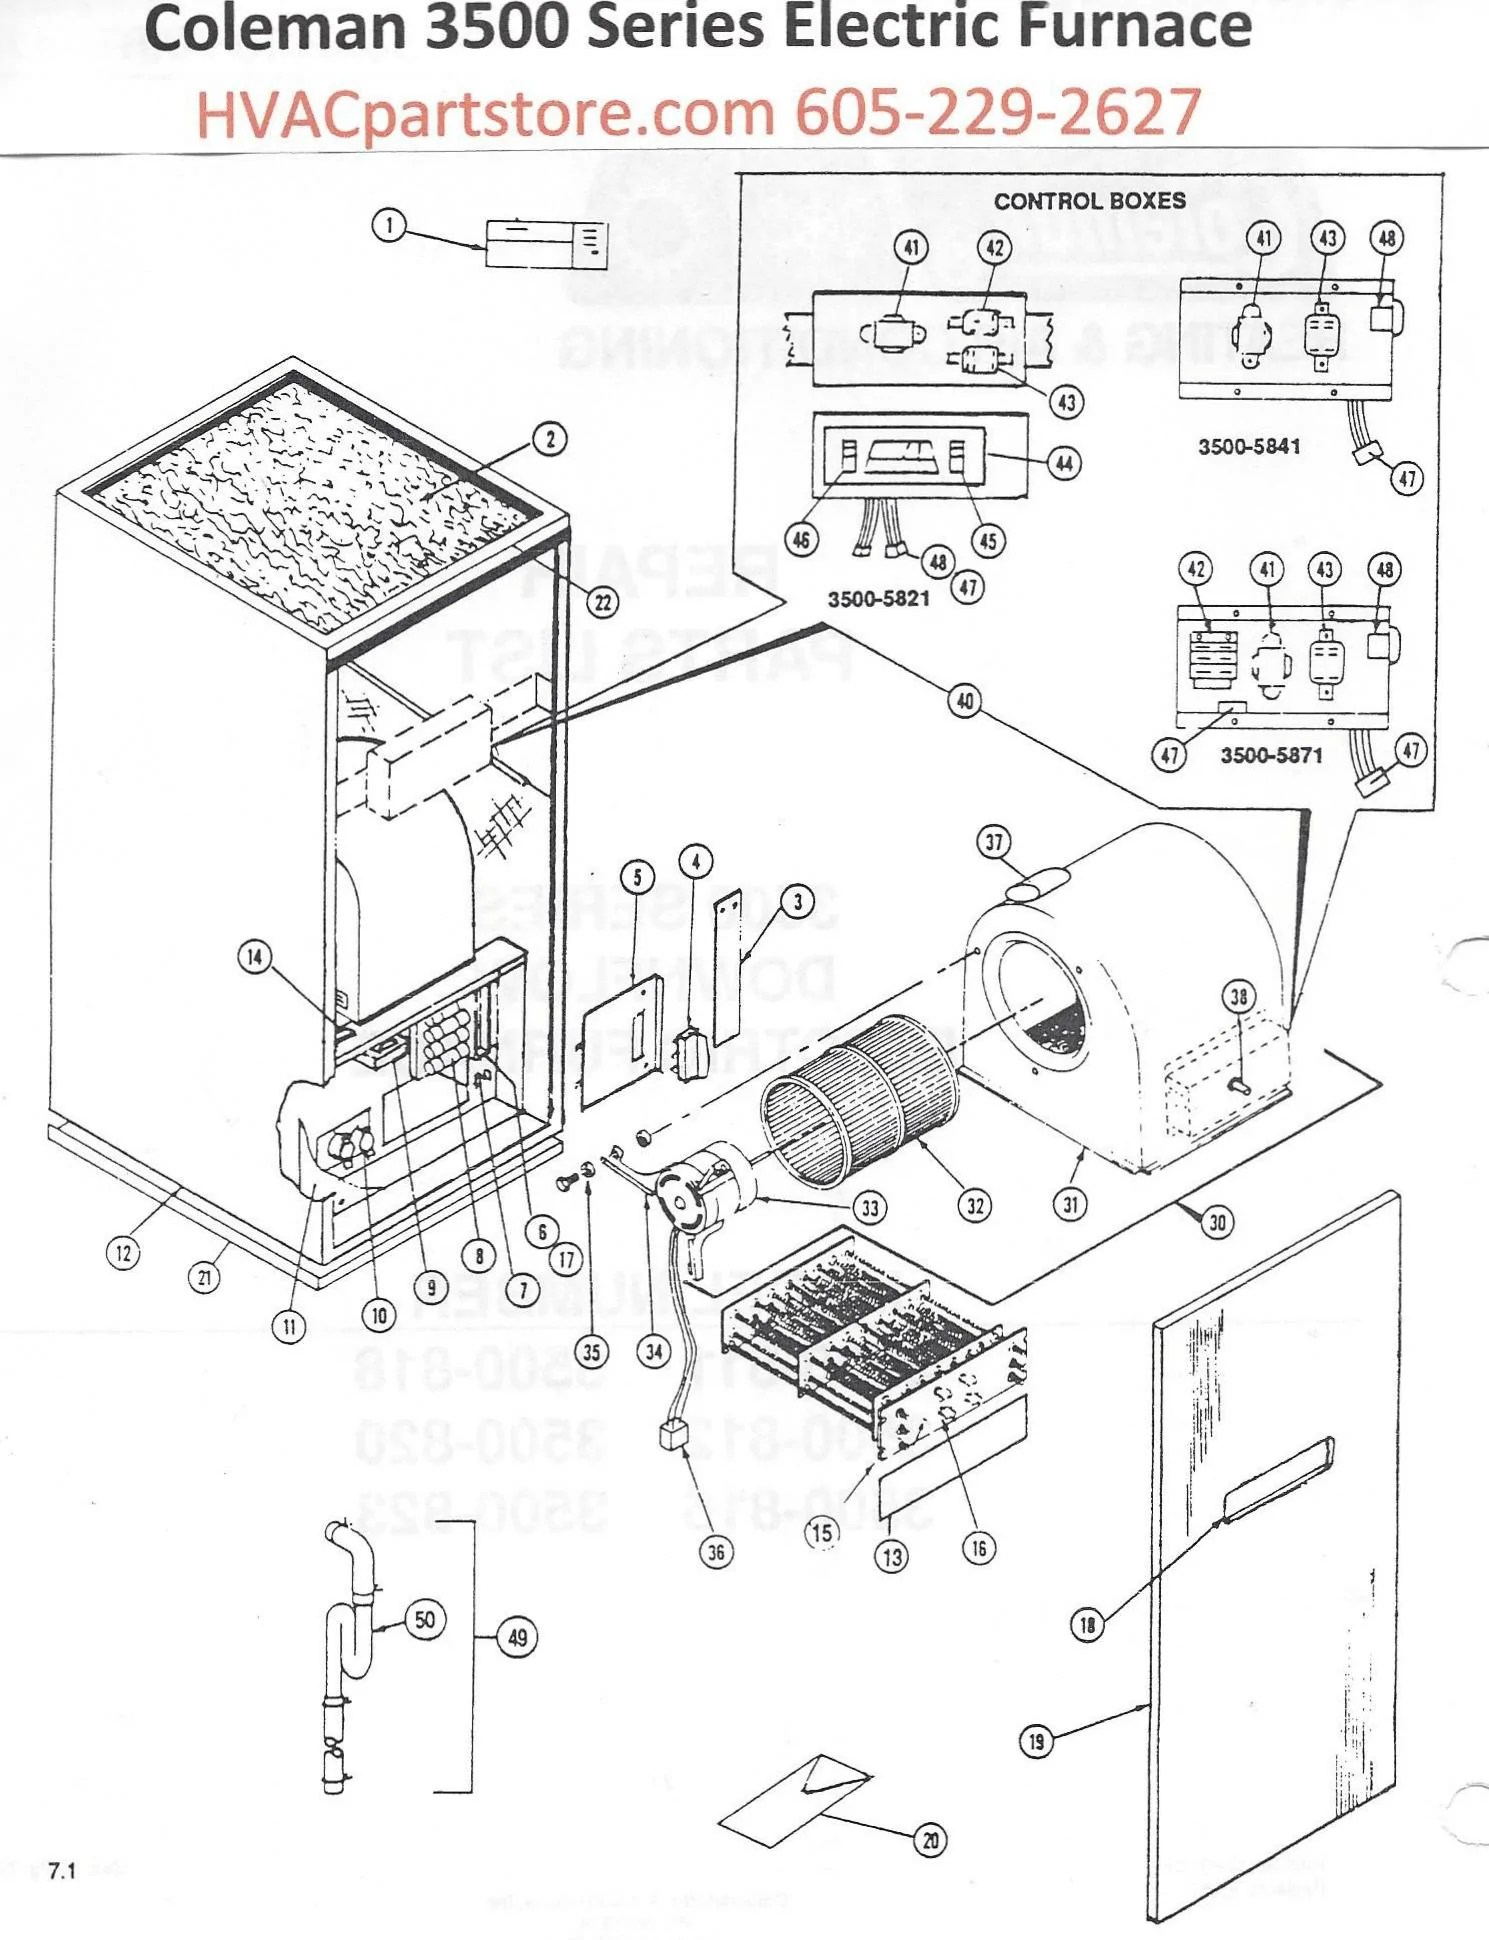 sequencer wiring moreover coleman electric furnace blower motor home electric furnace parts moreover coleman electric furnace wiring [ 1489 x 1940 Pixel ]